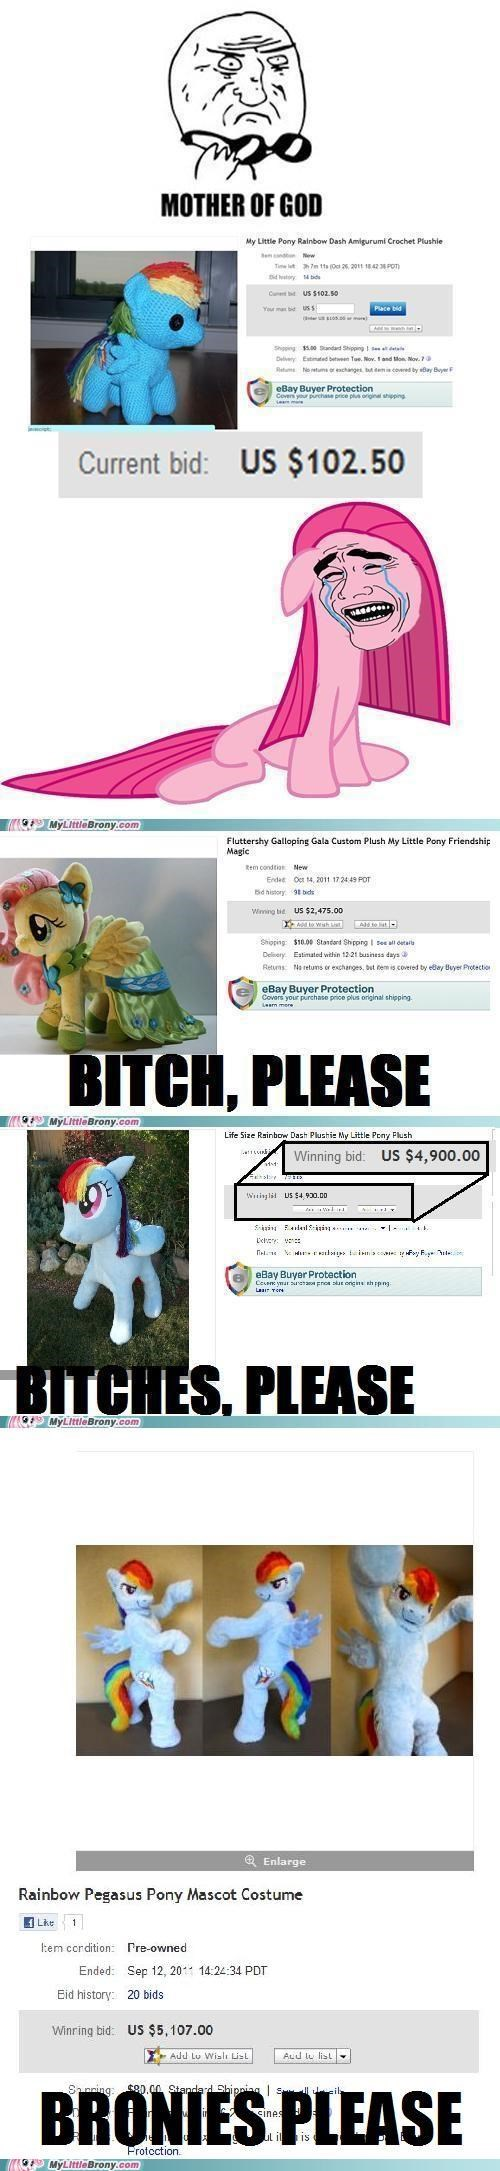 best of week,Bronies,expensive,IRL,mother of god,please,plushies